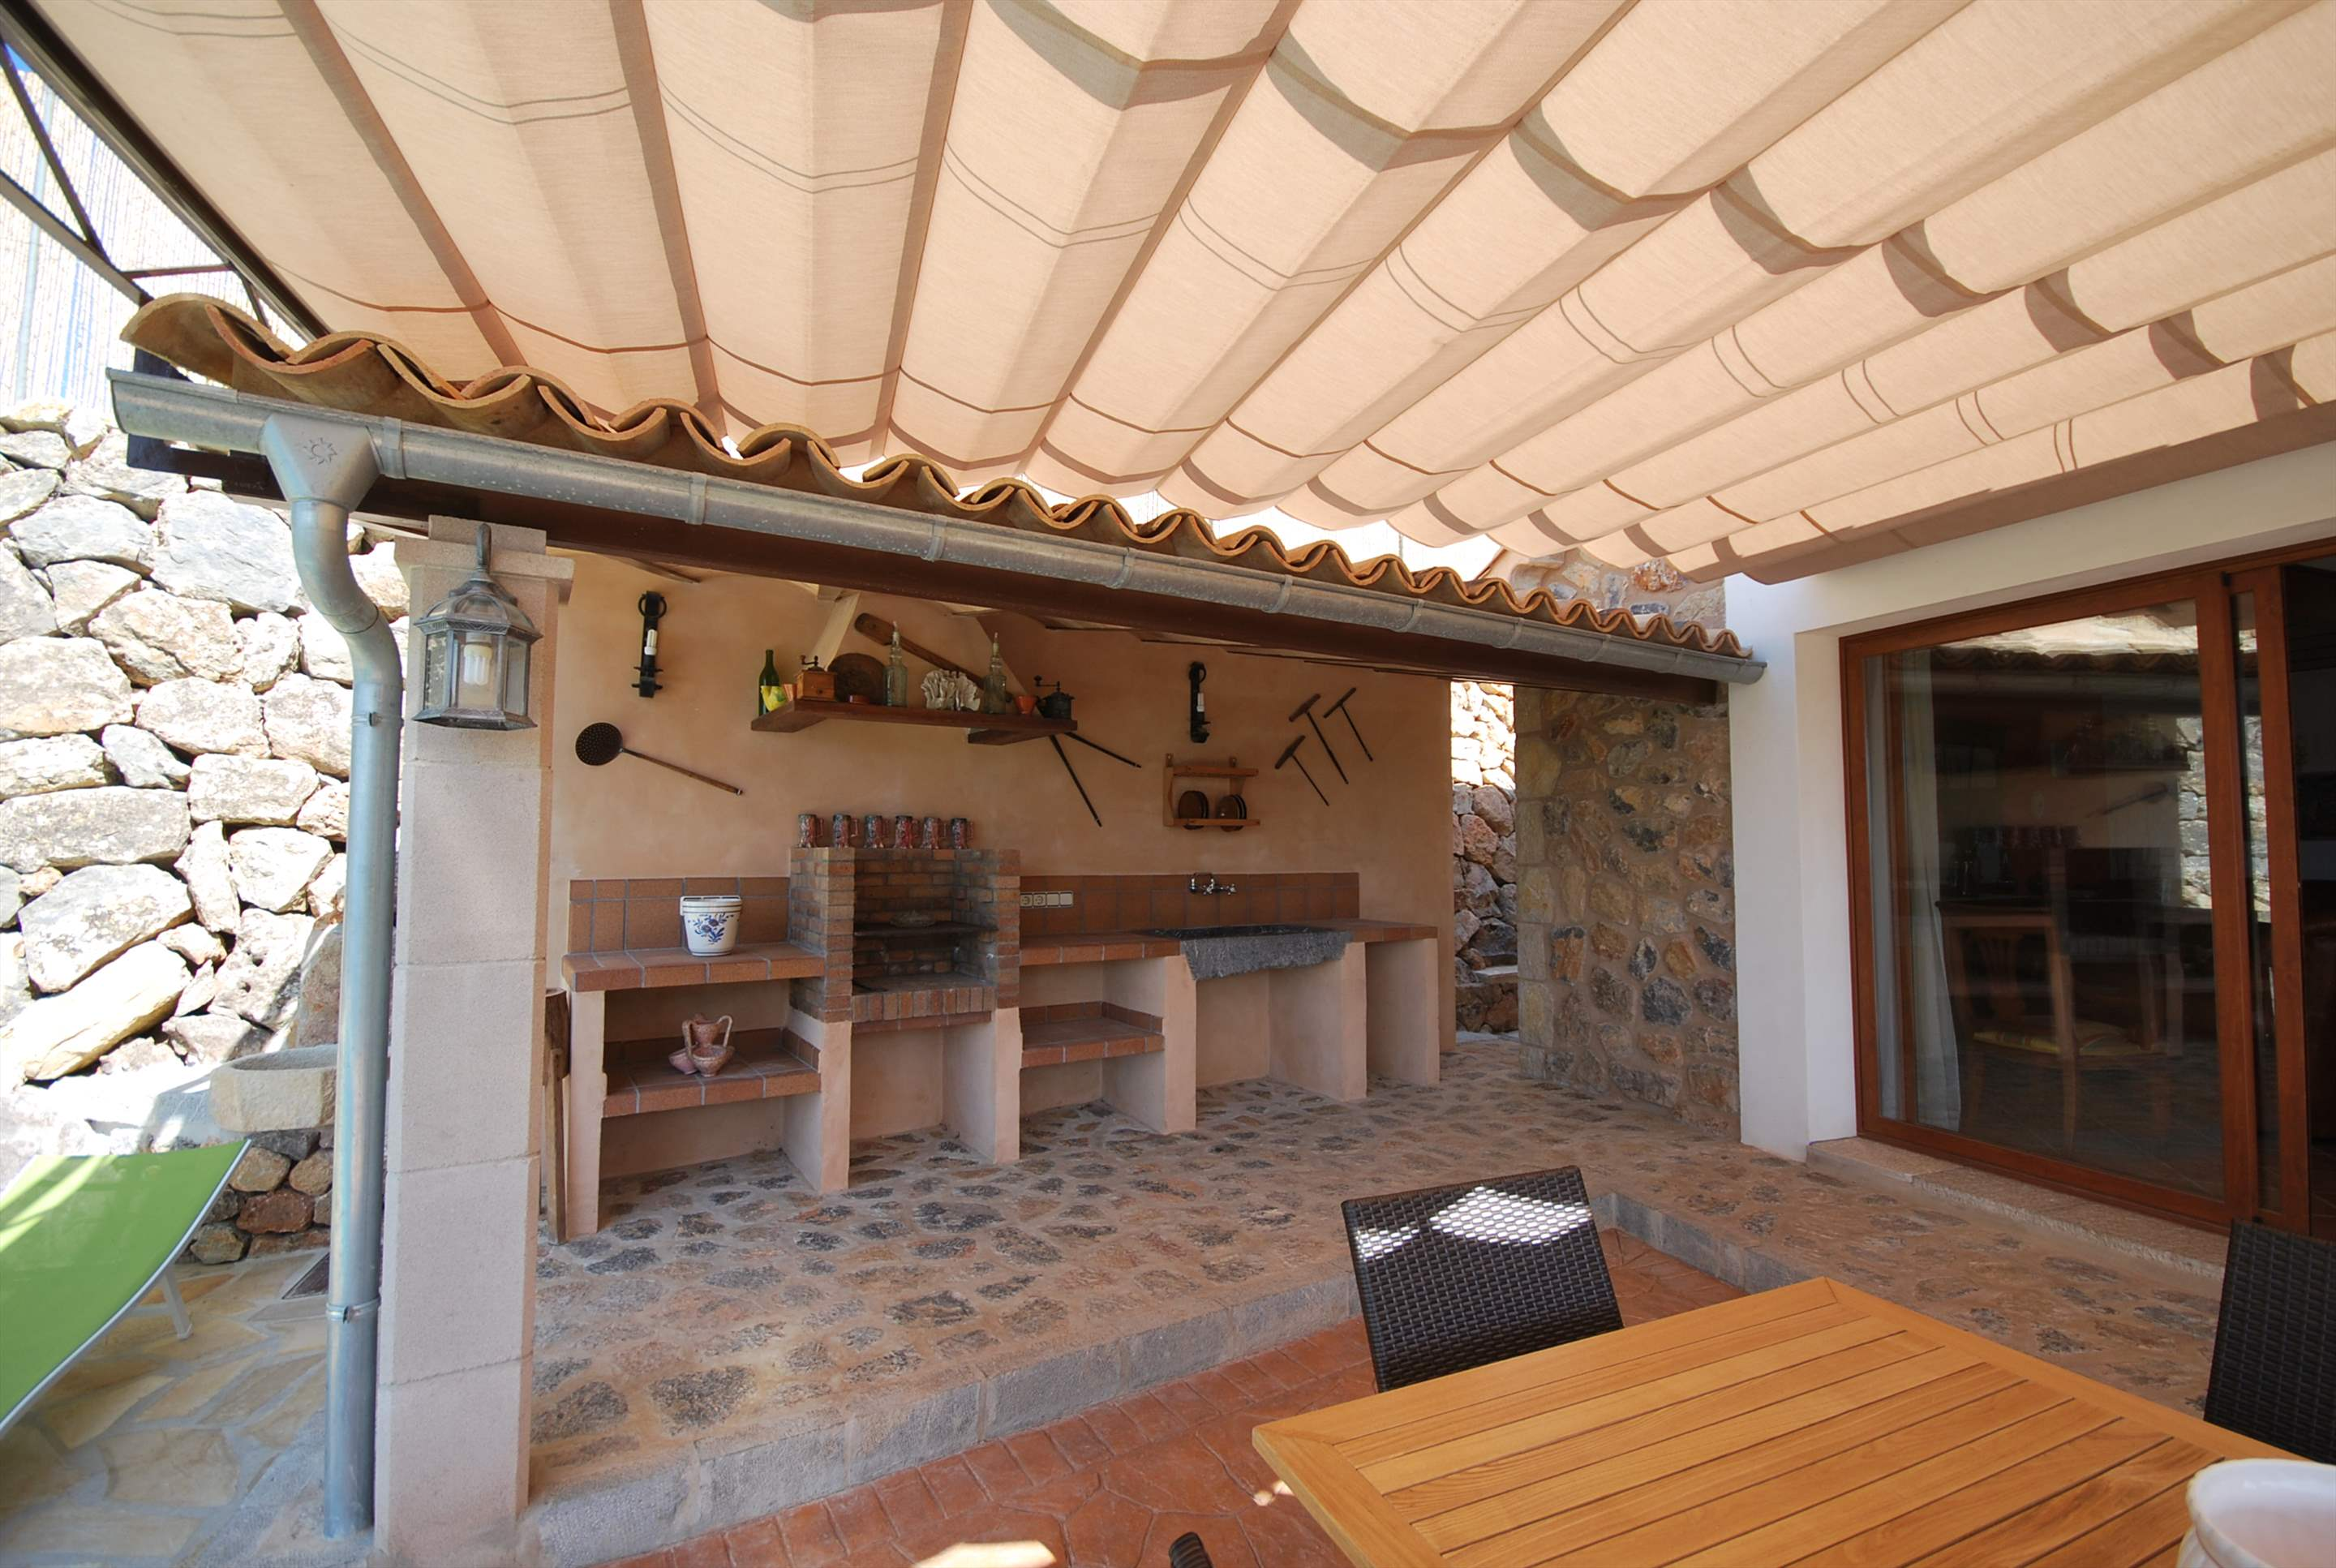 Casa Tres Cruces - SO1797, 3 bedroom villa in Soller & Deia, Majorca Photo #7